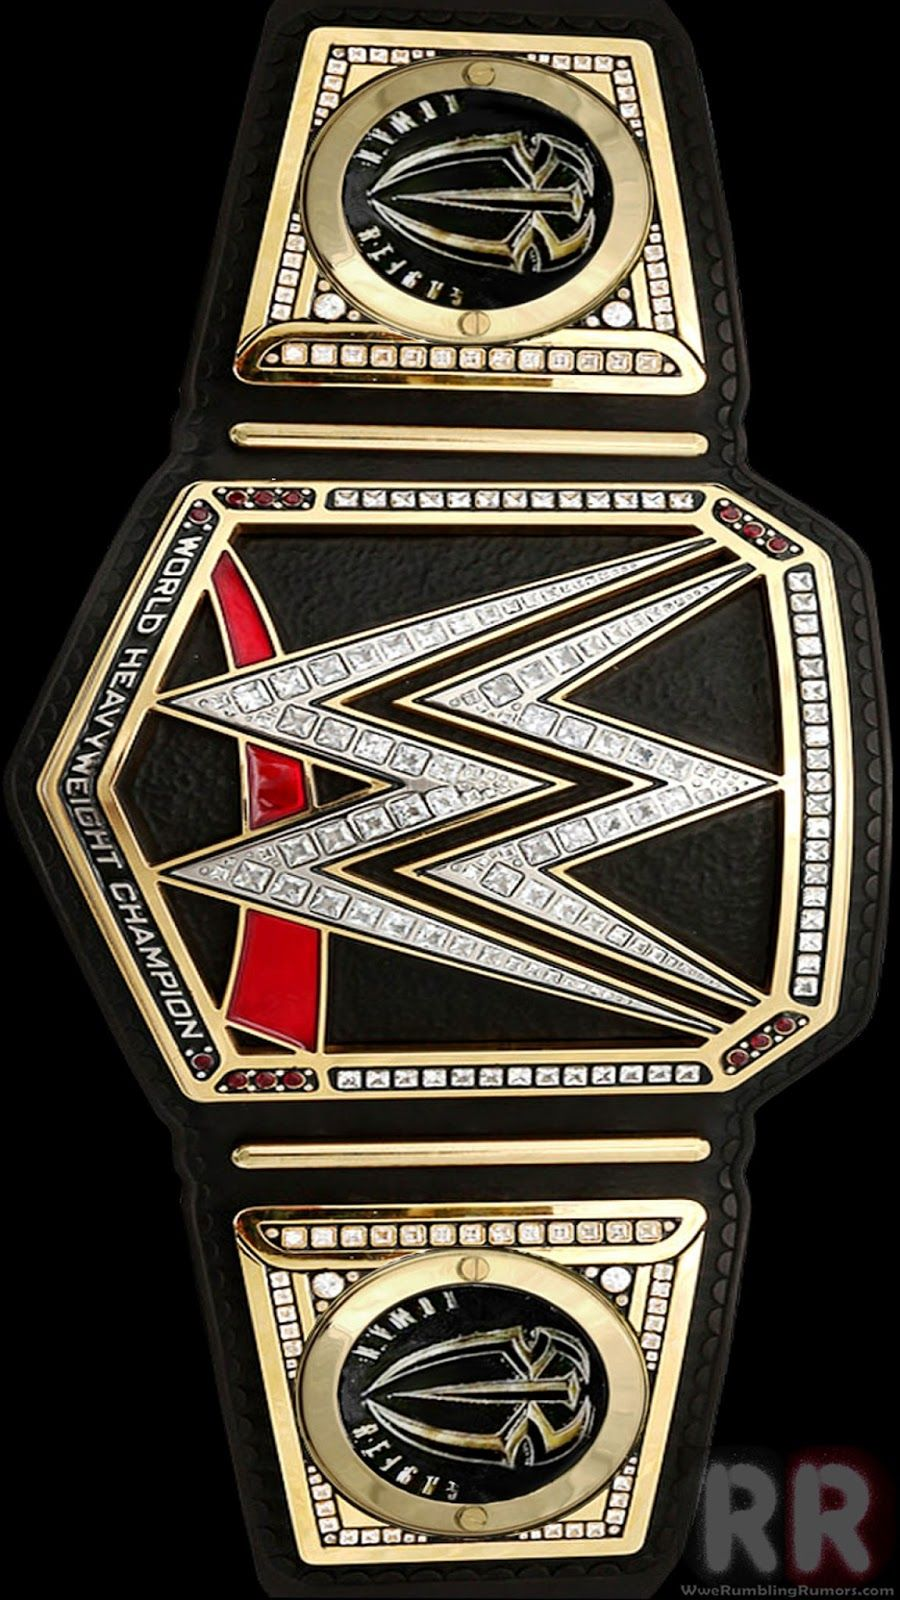 Wallpapers Wwe Belts Wwe Championship Belts Wwe Wallpapers